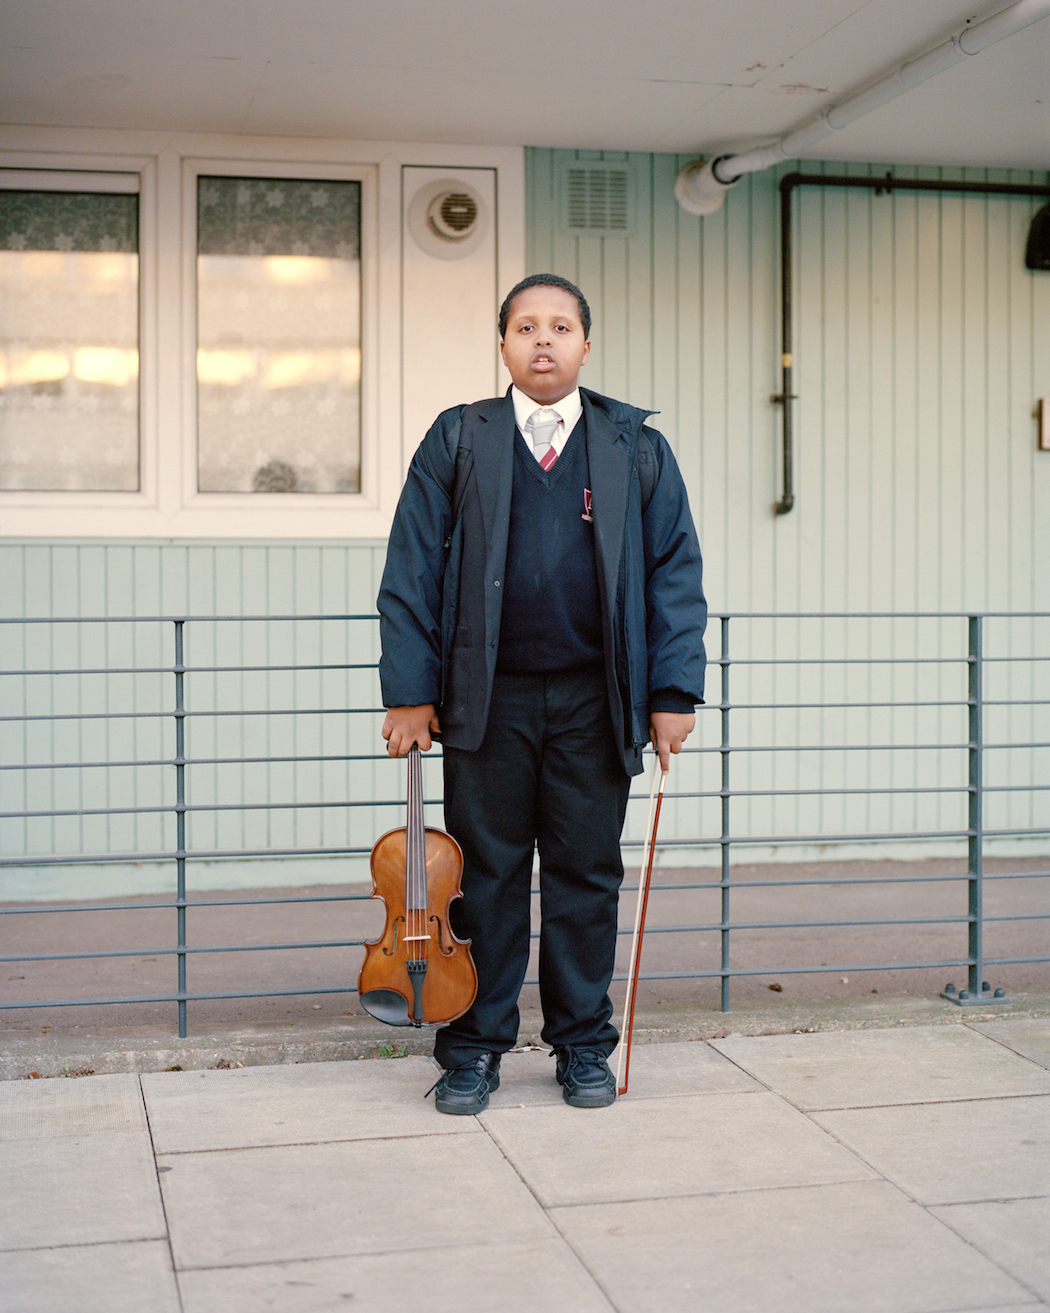 Cian Oba Smith color, film photography, portrait, youth, boy Andover & Six Acres, housing estates north London